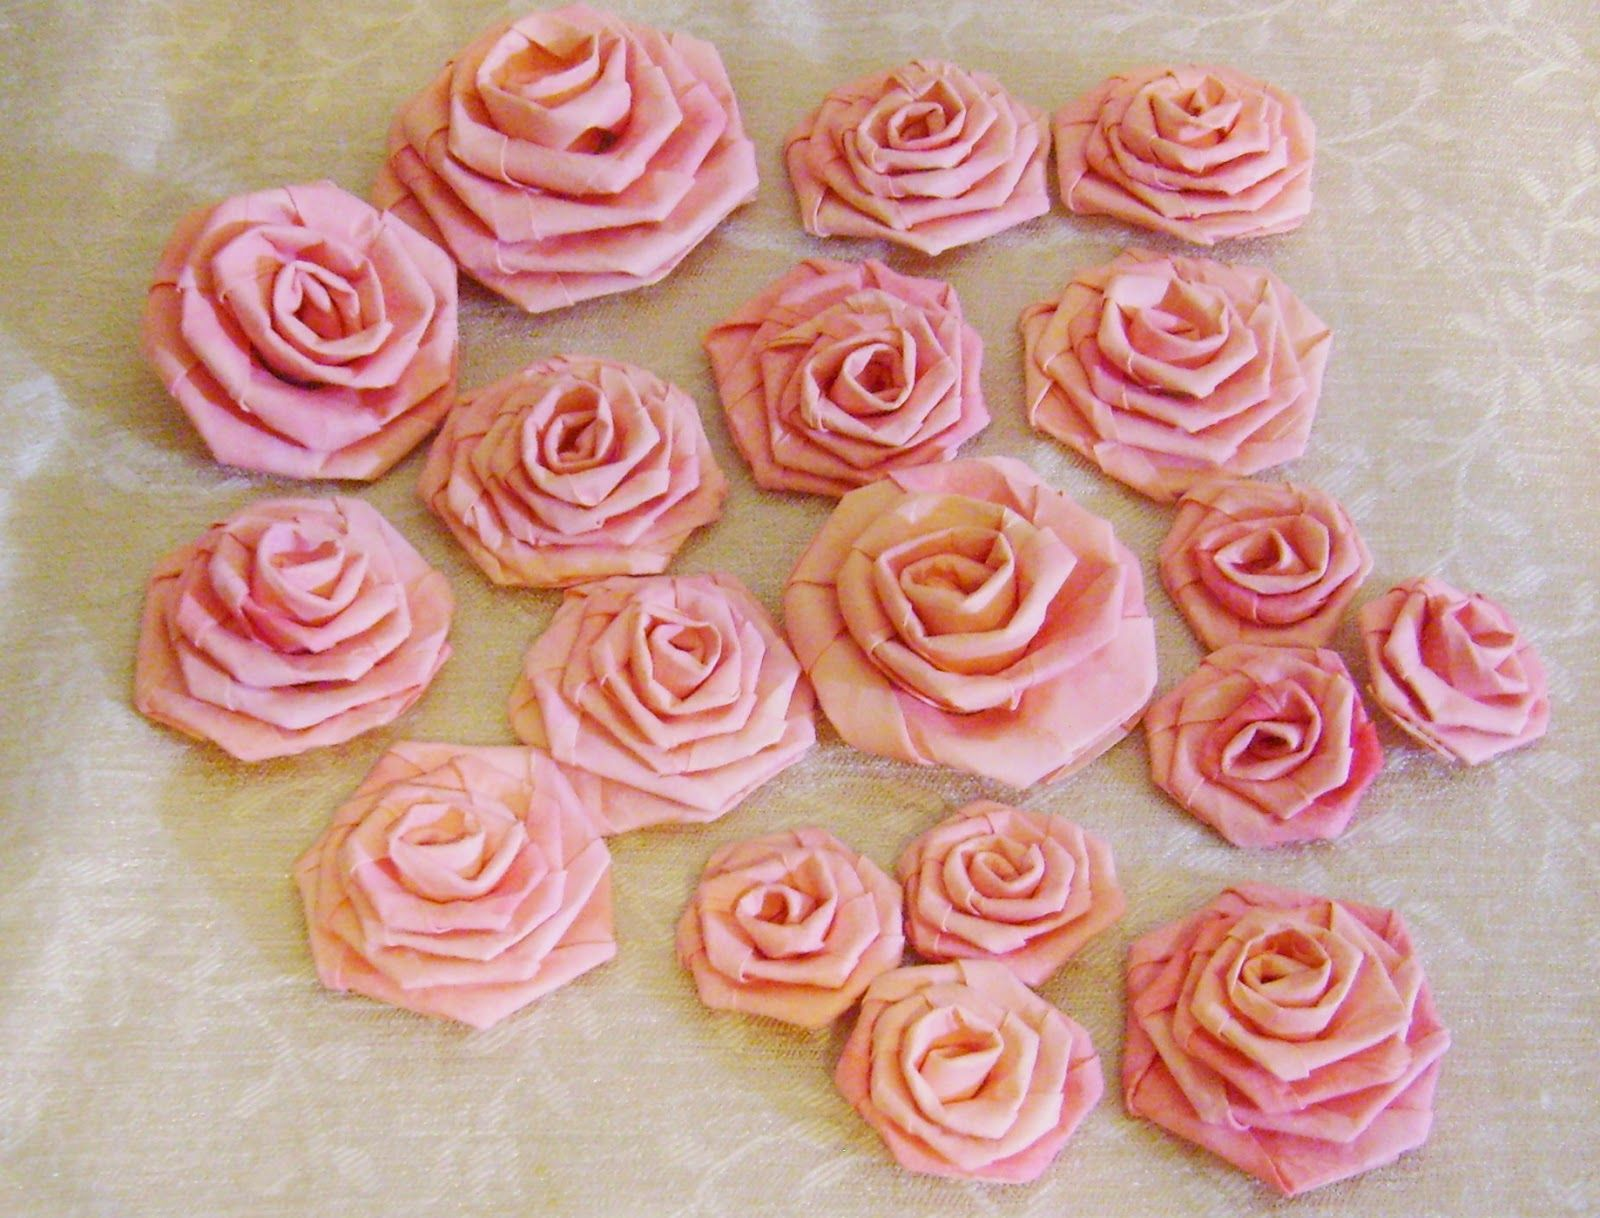 Making rolled roses from old typing paper recycled crafts how to make rolled paper roses out of typing paper or notebook paper mightylinksfo